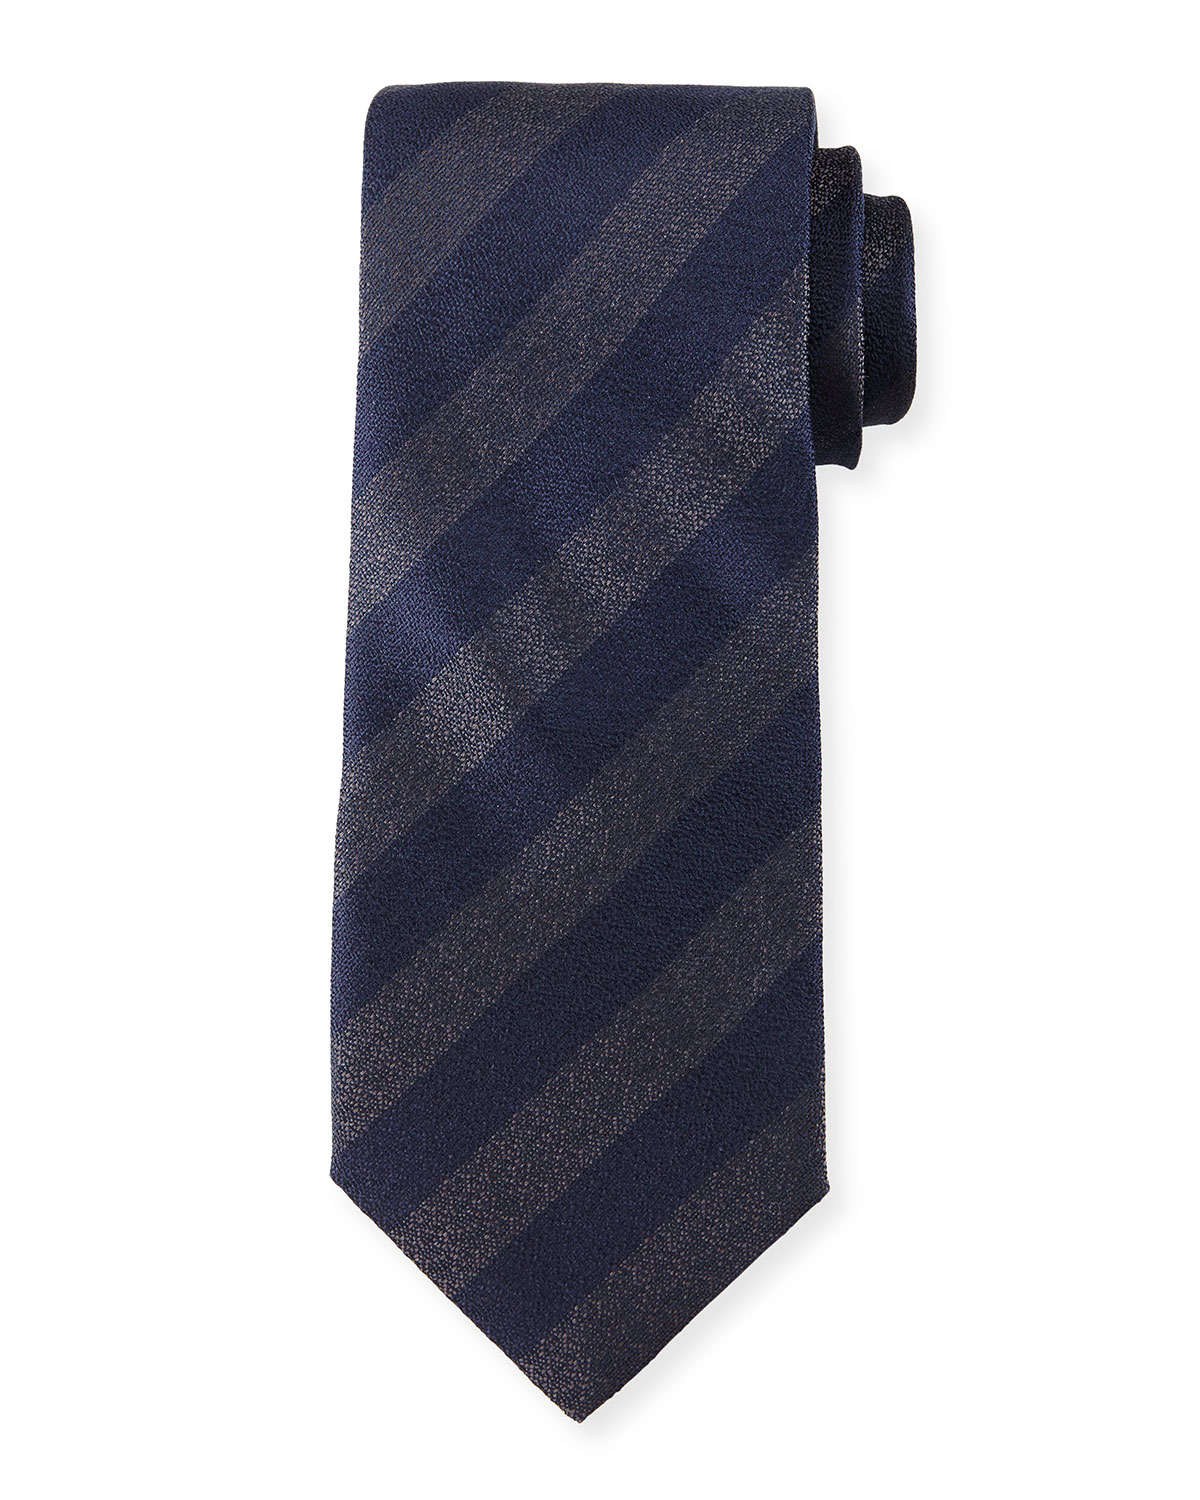 Iridescent Striped Silk Tie, Navy